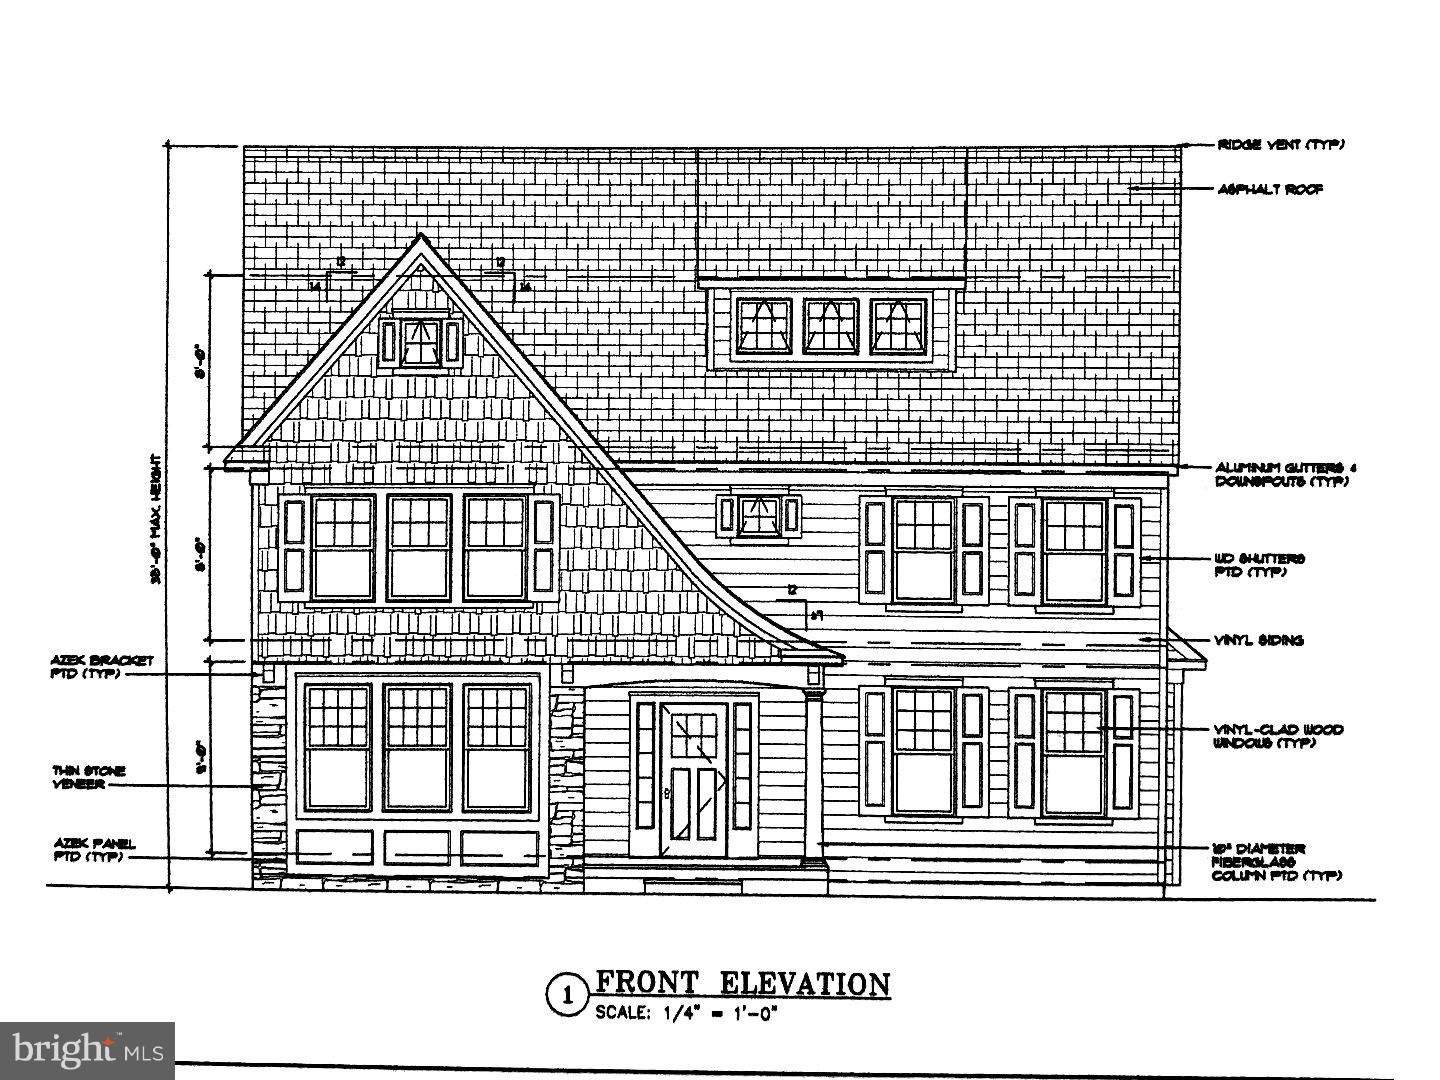 Single Family Home for Sale at 19 REDMAN Avenue Haddonfield, New Jersey 08033 United States